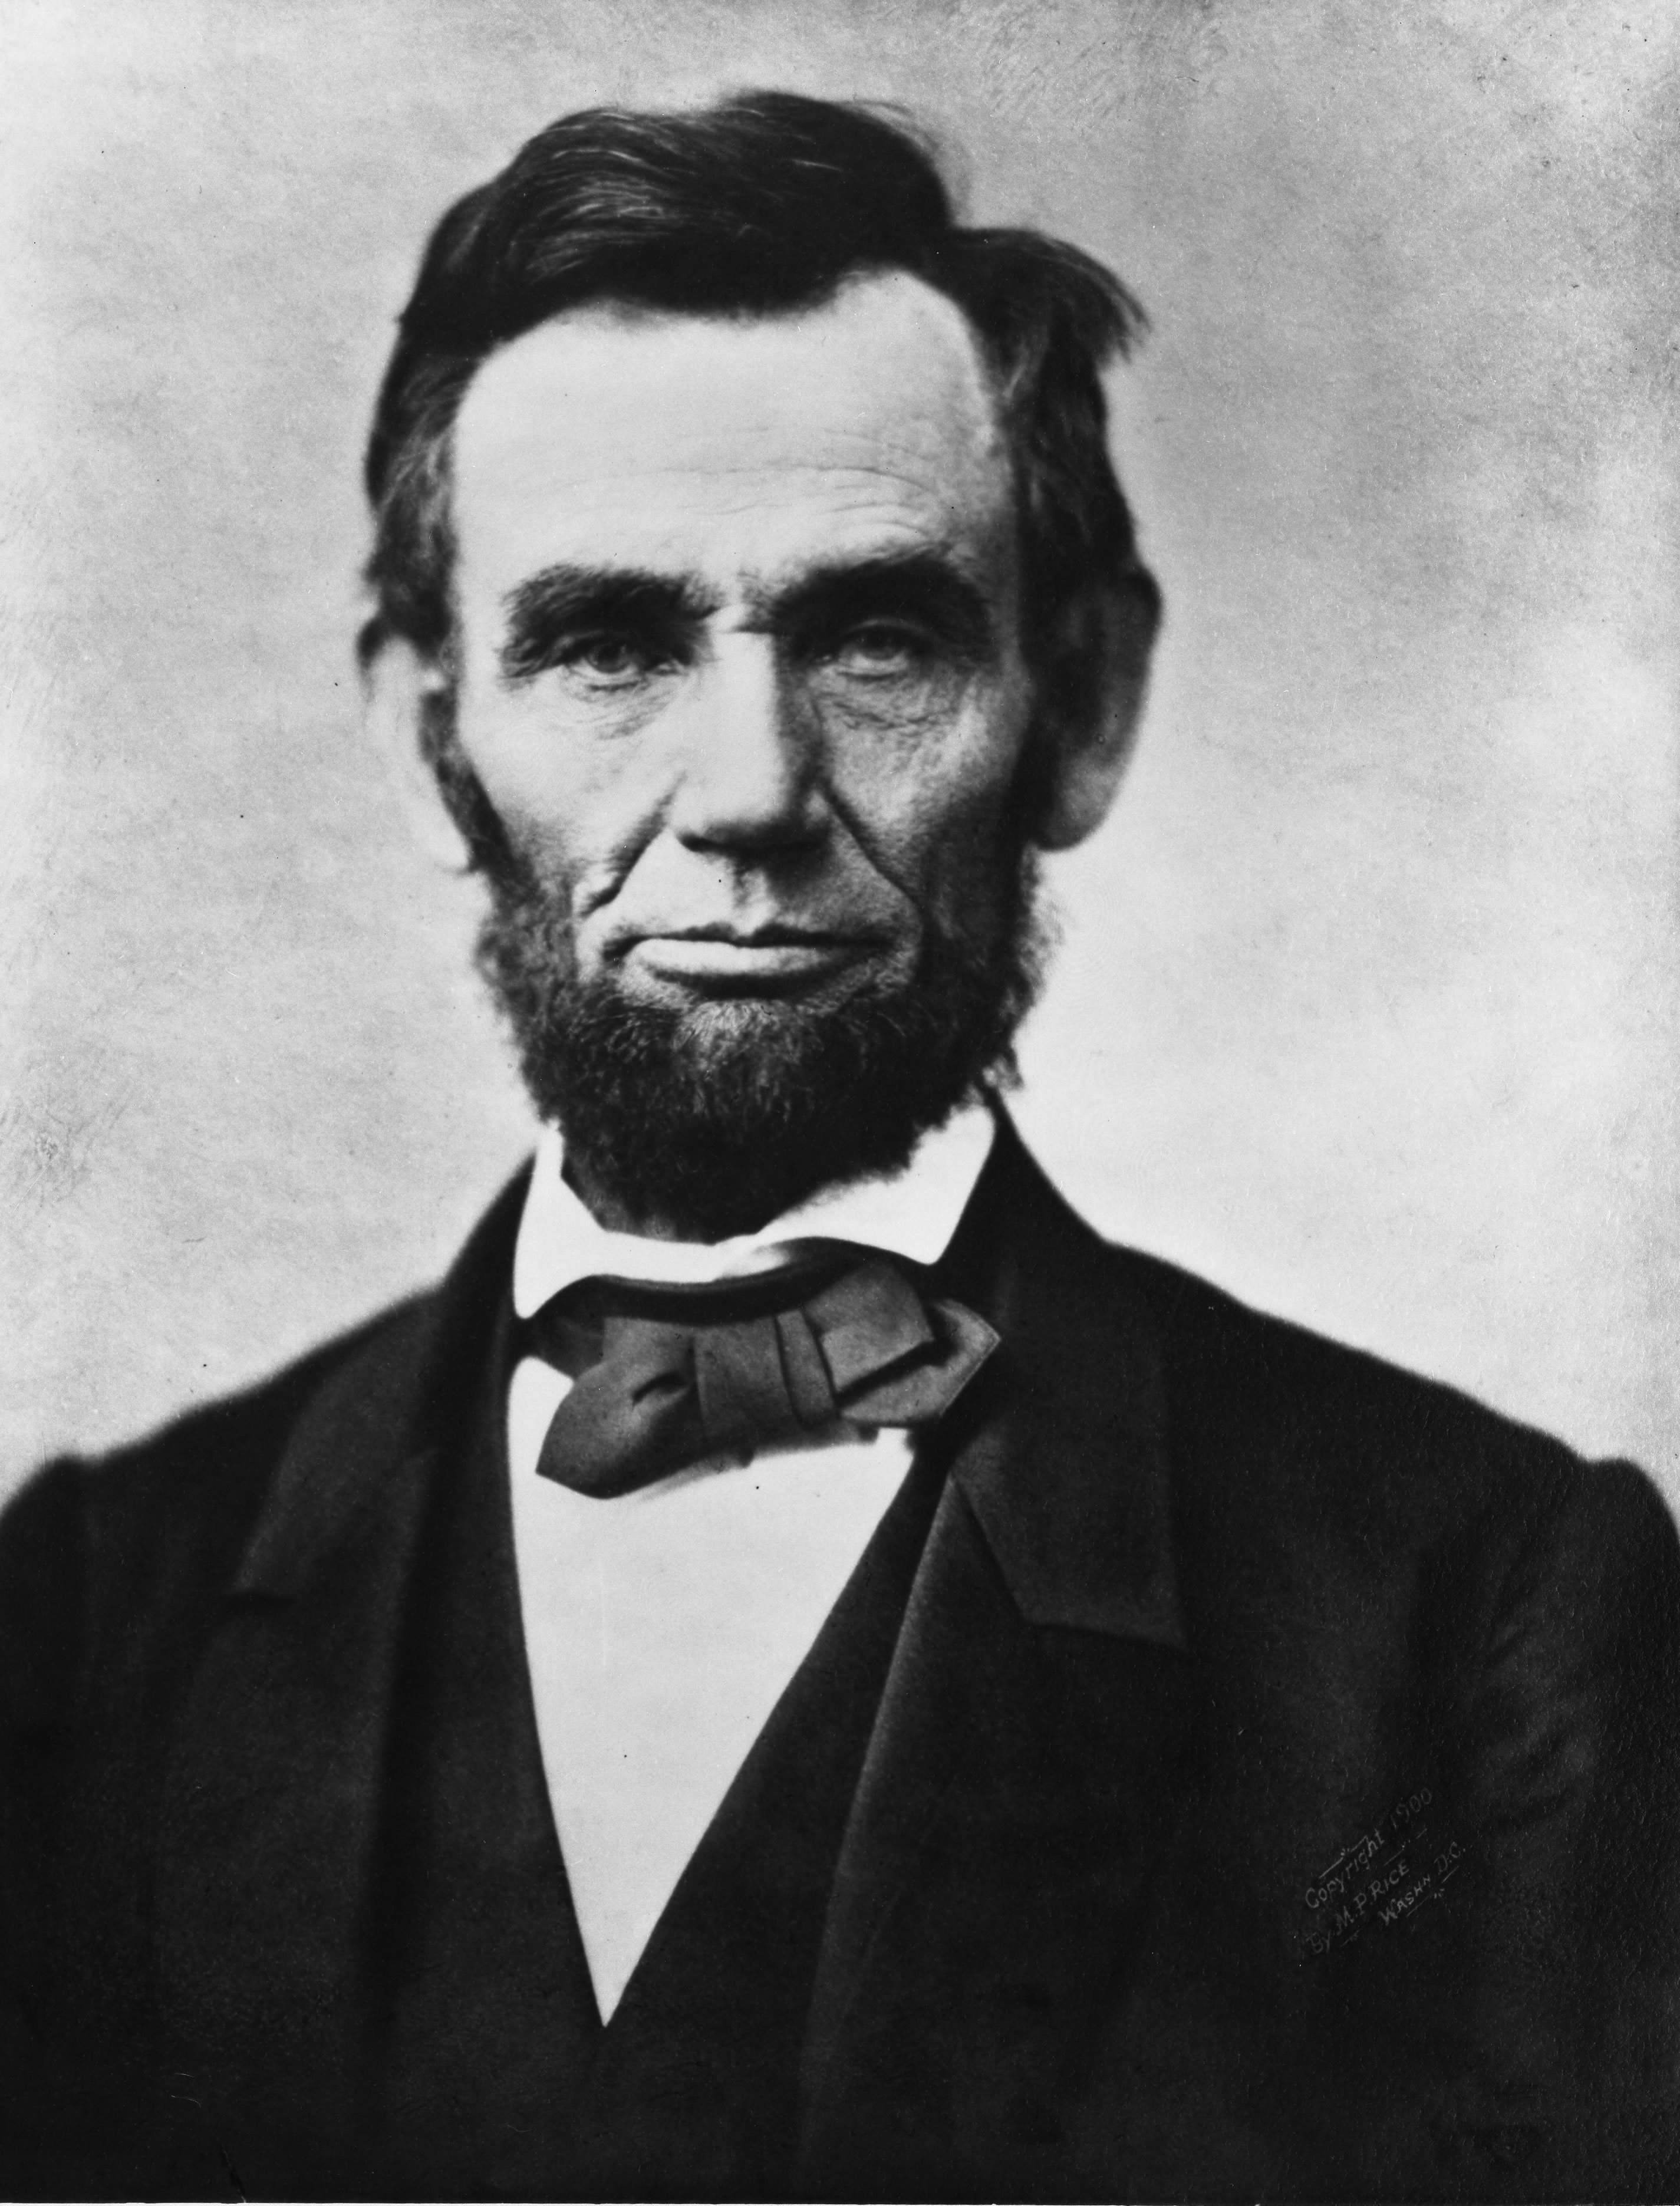 Abraham Lincoln (A House Divided)